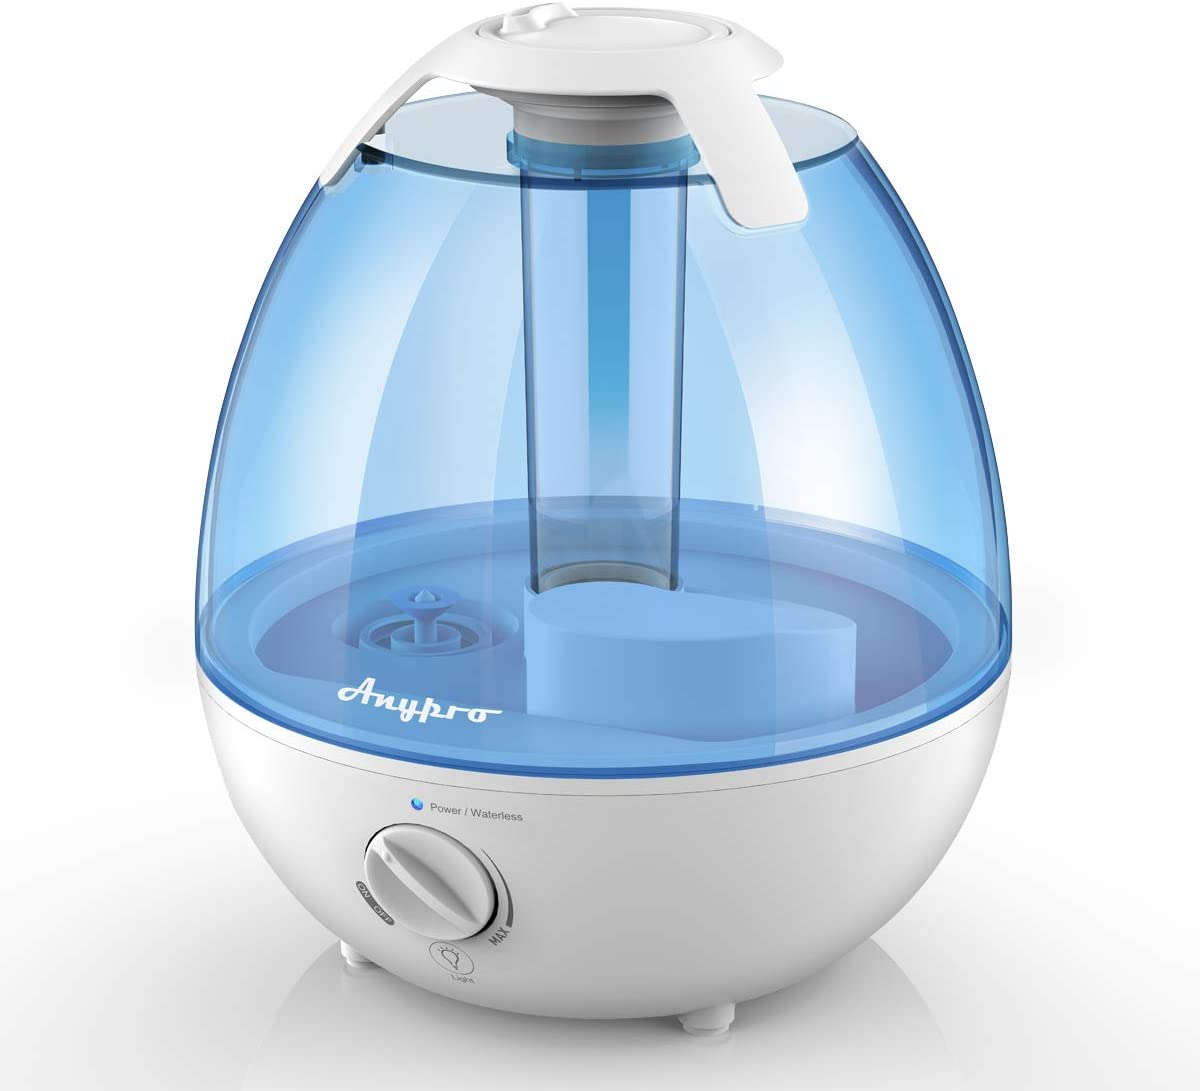 Anypro Ultrasonic 3.5L Cool Mist Humidifier Reviewed